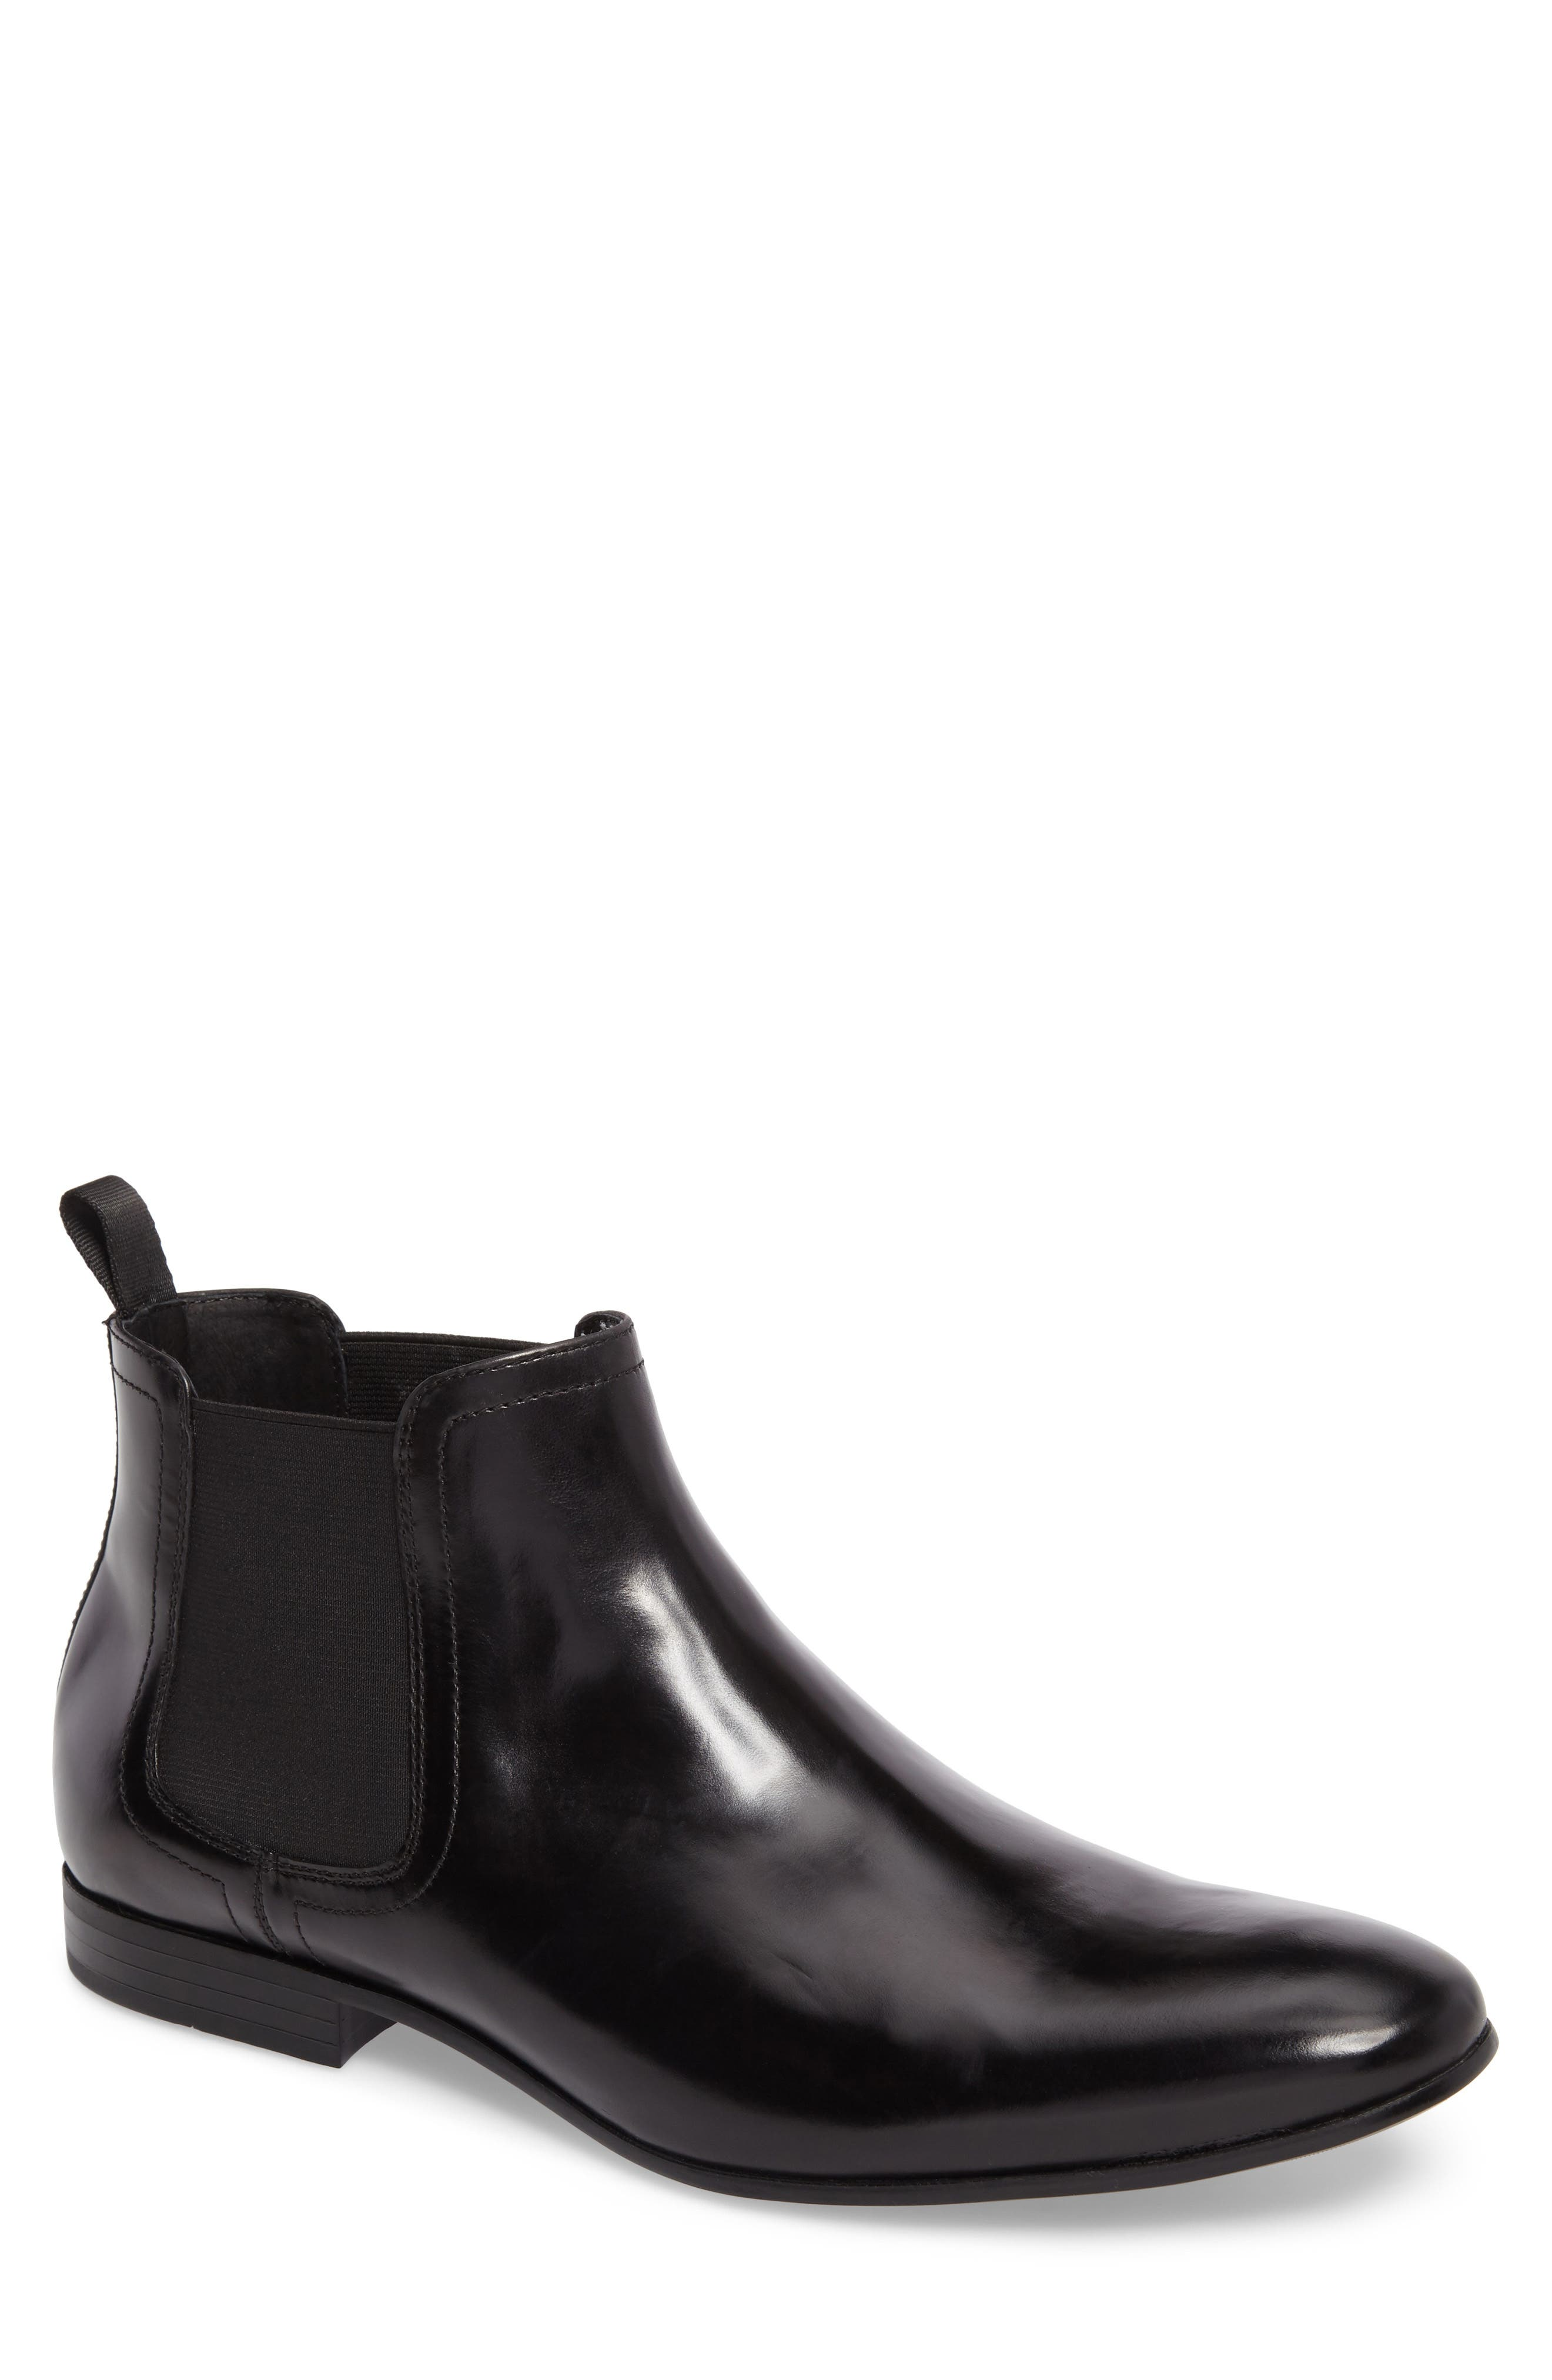 Chelsea Boot,                             Main thumbnail 1, color,                             Black Leather